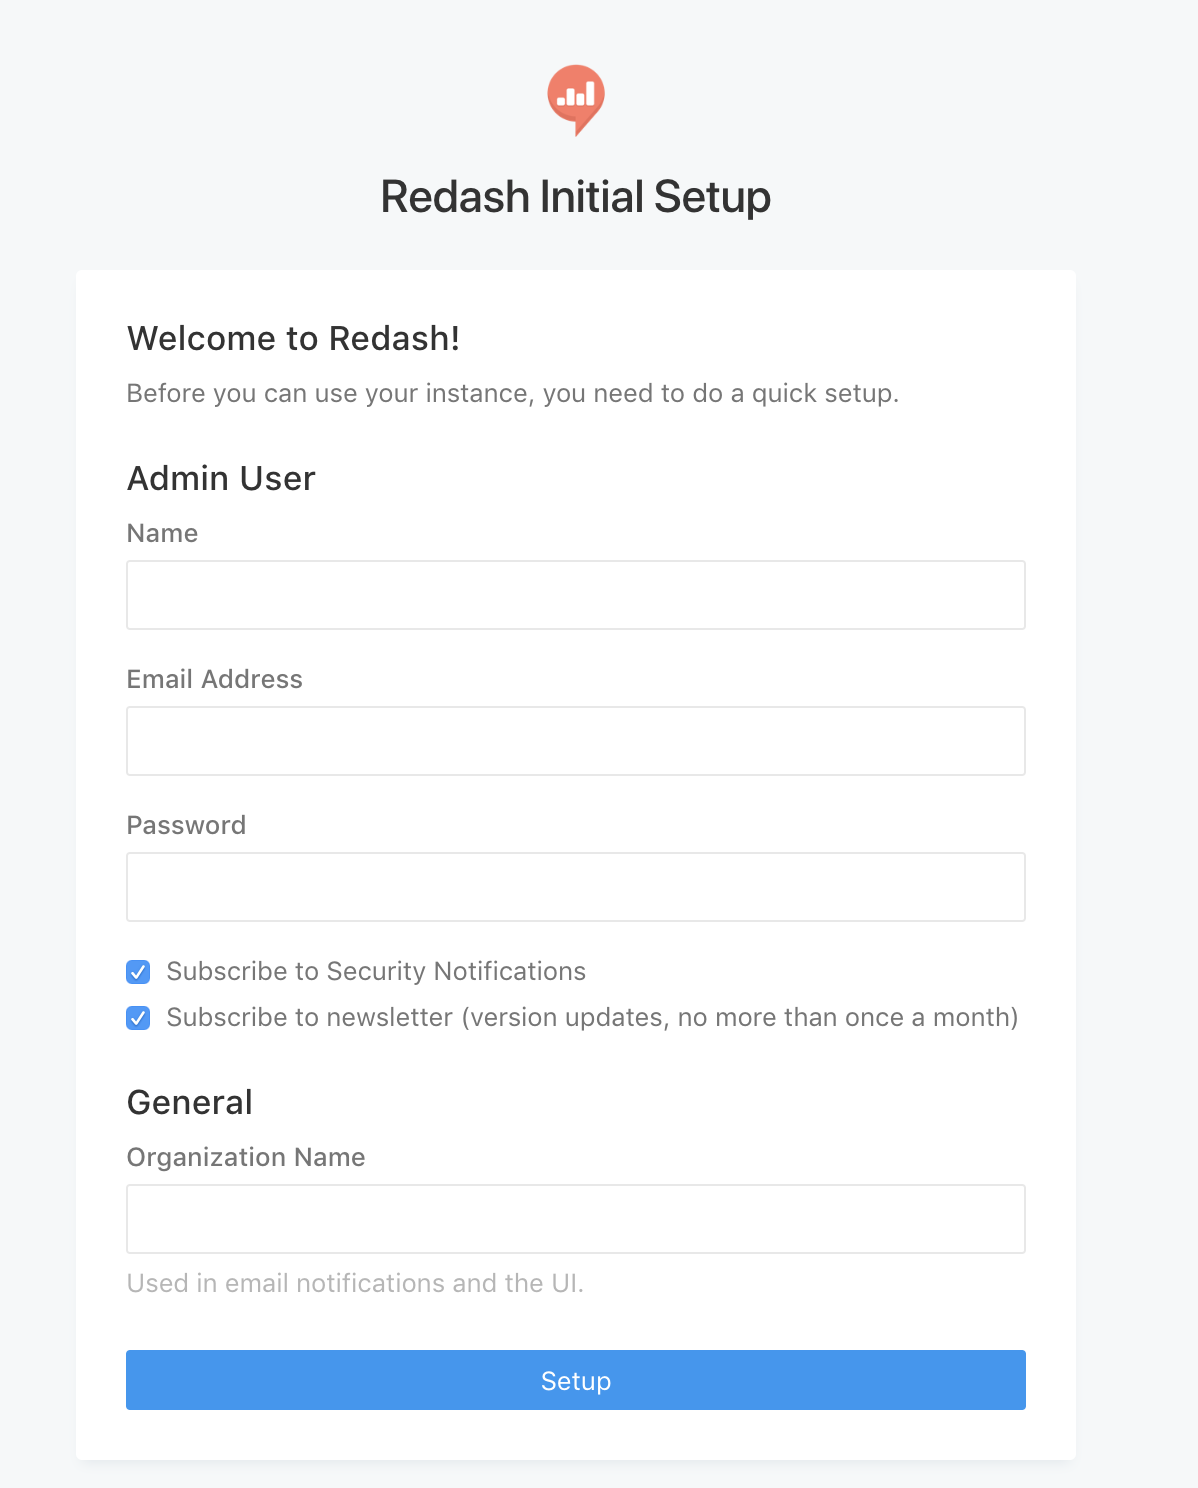 Launching an instance using Redash AMI - Redash v5 Quick Start Guide